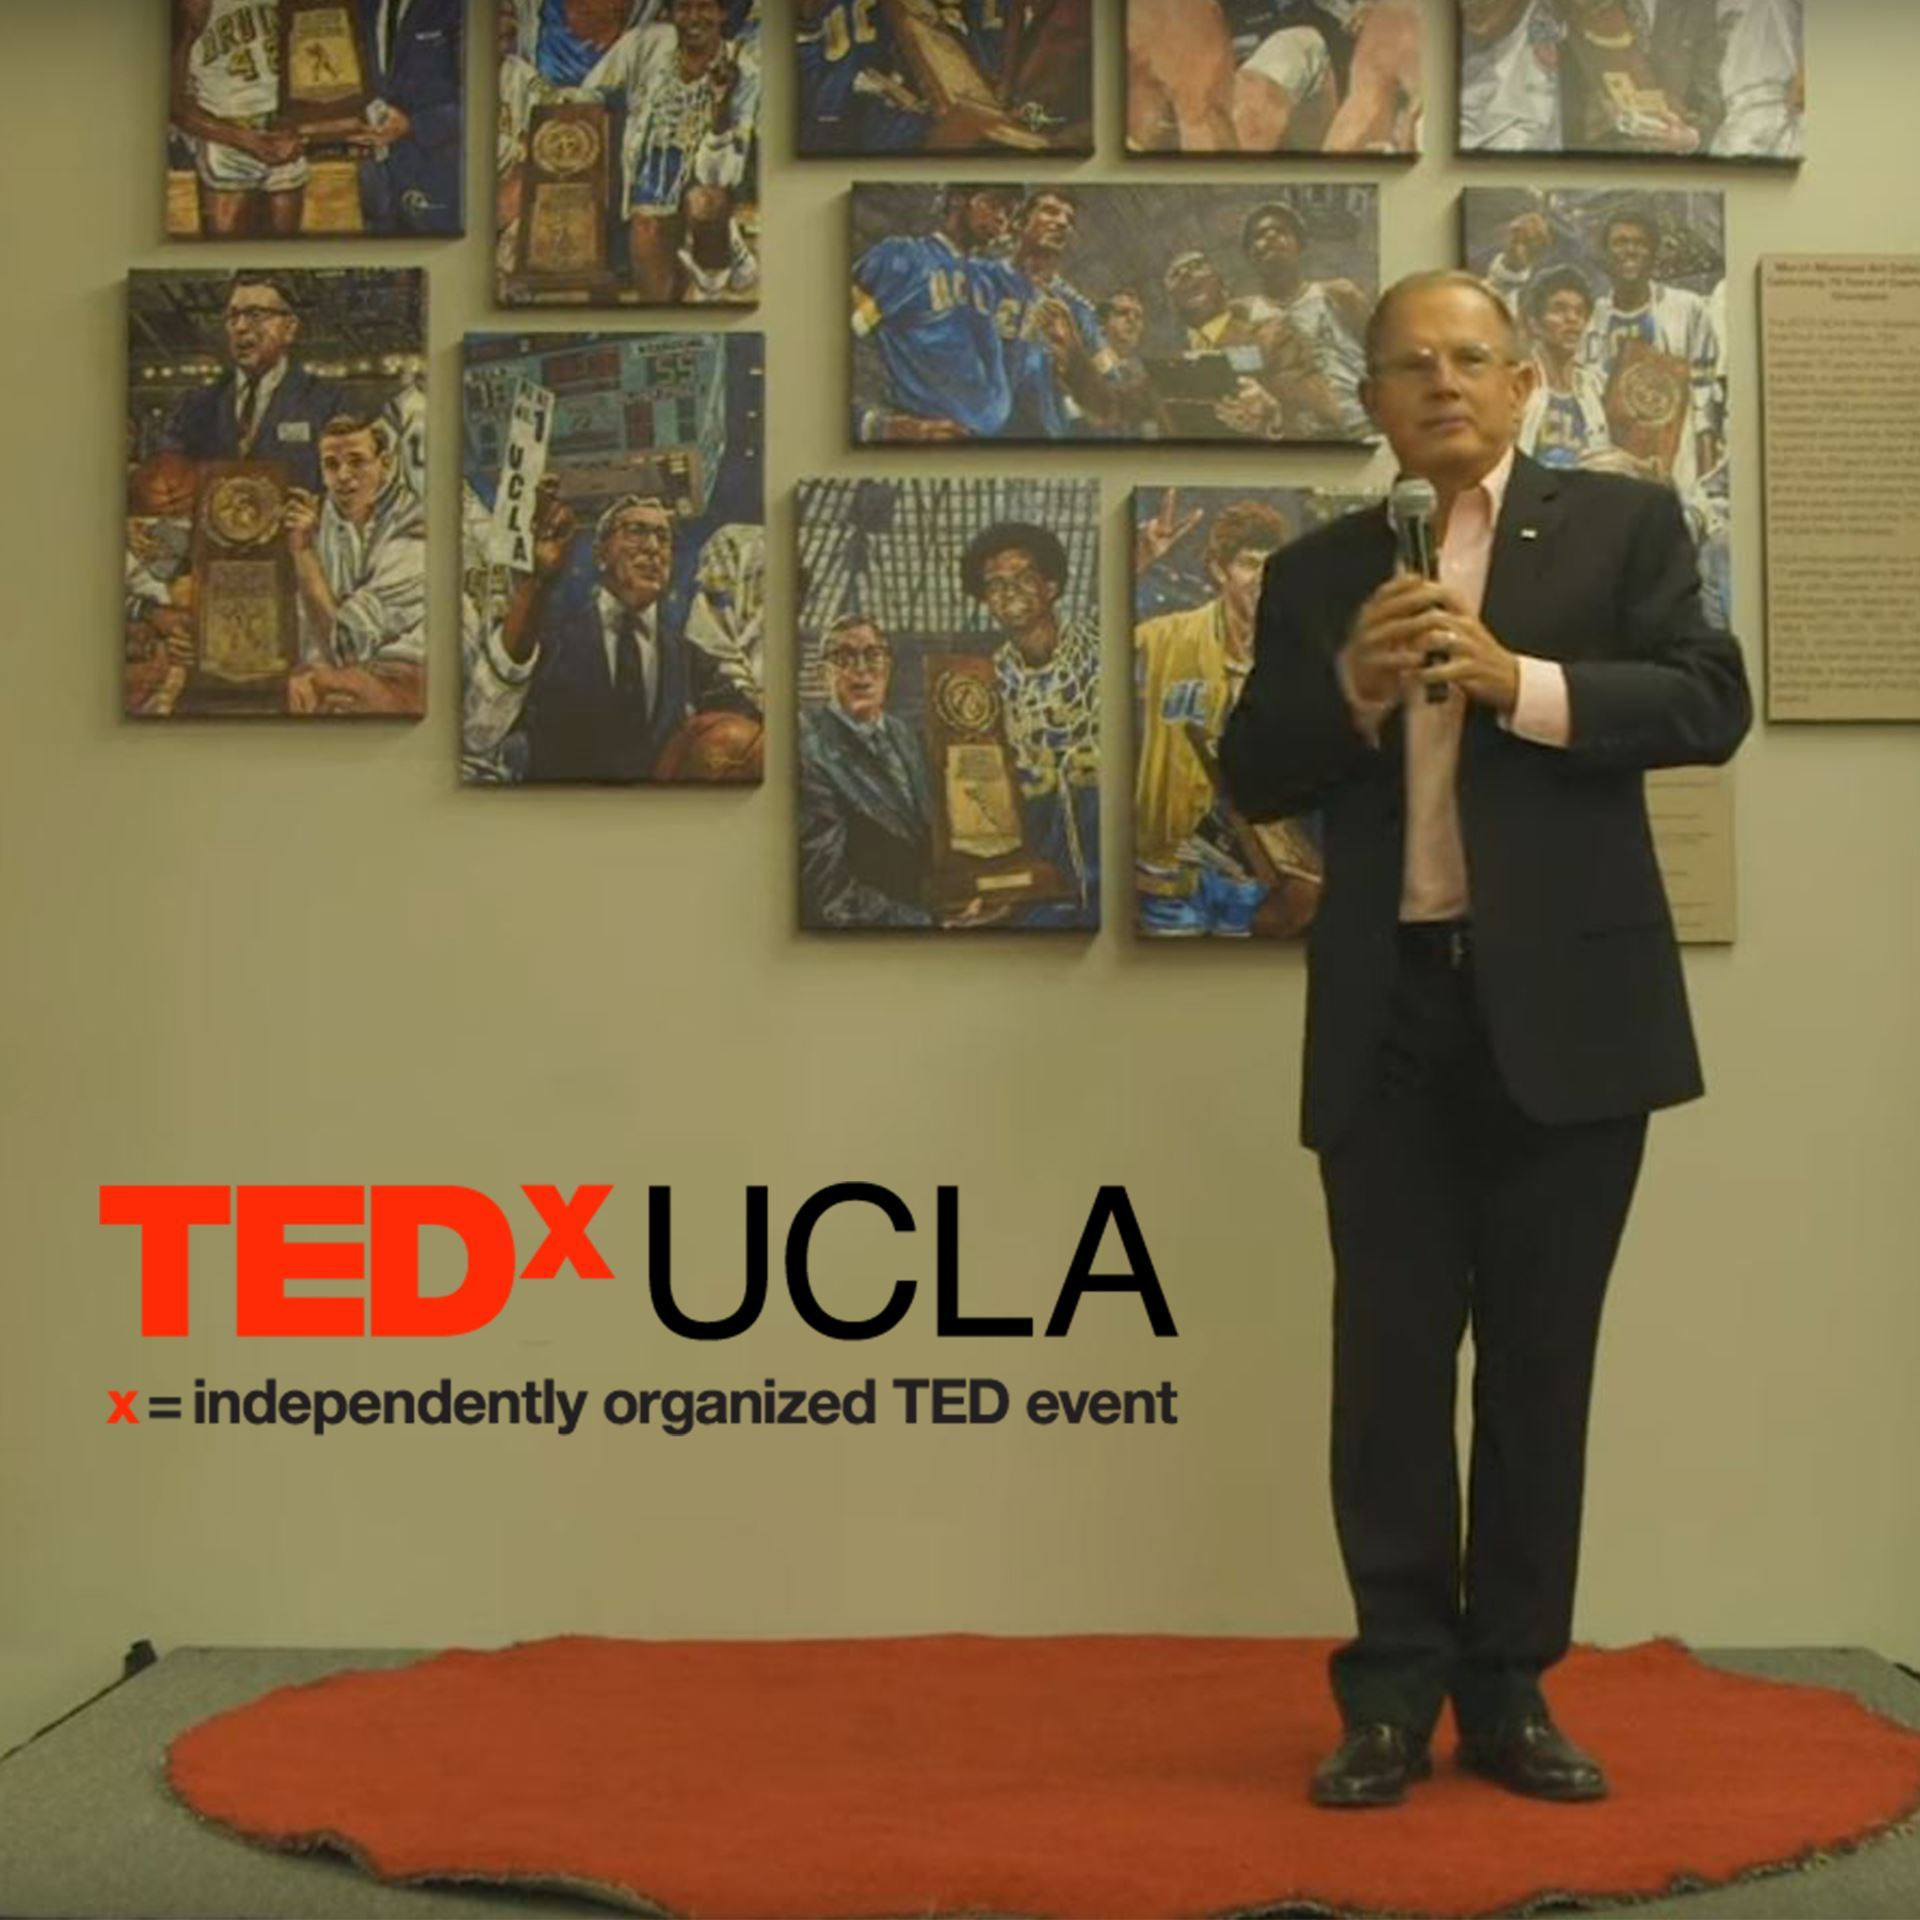 Micheal Eselun at TEDx UCLA - click the photo to view the video